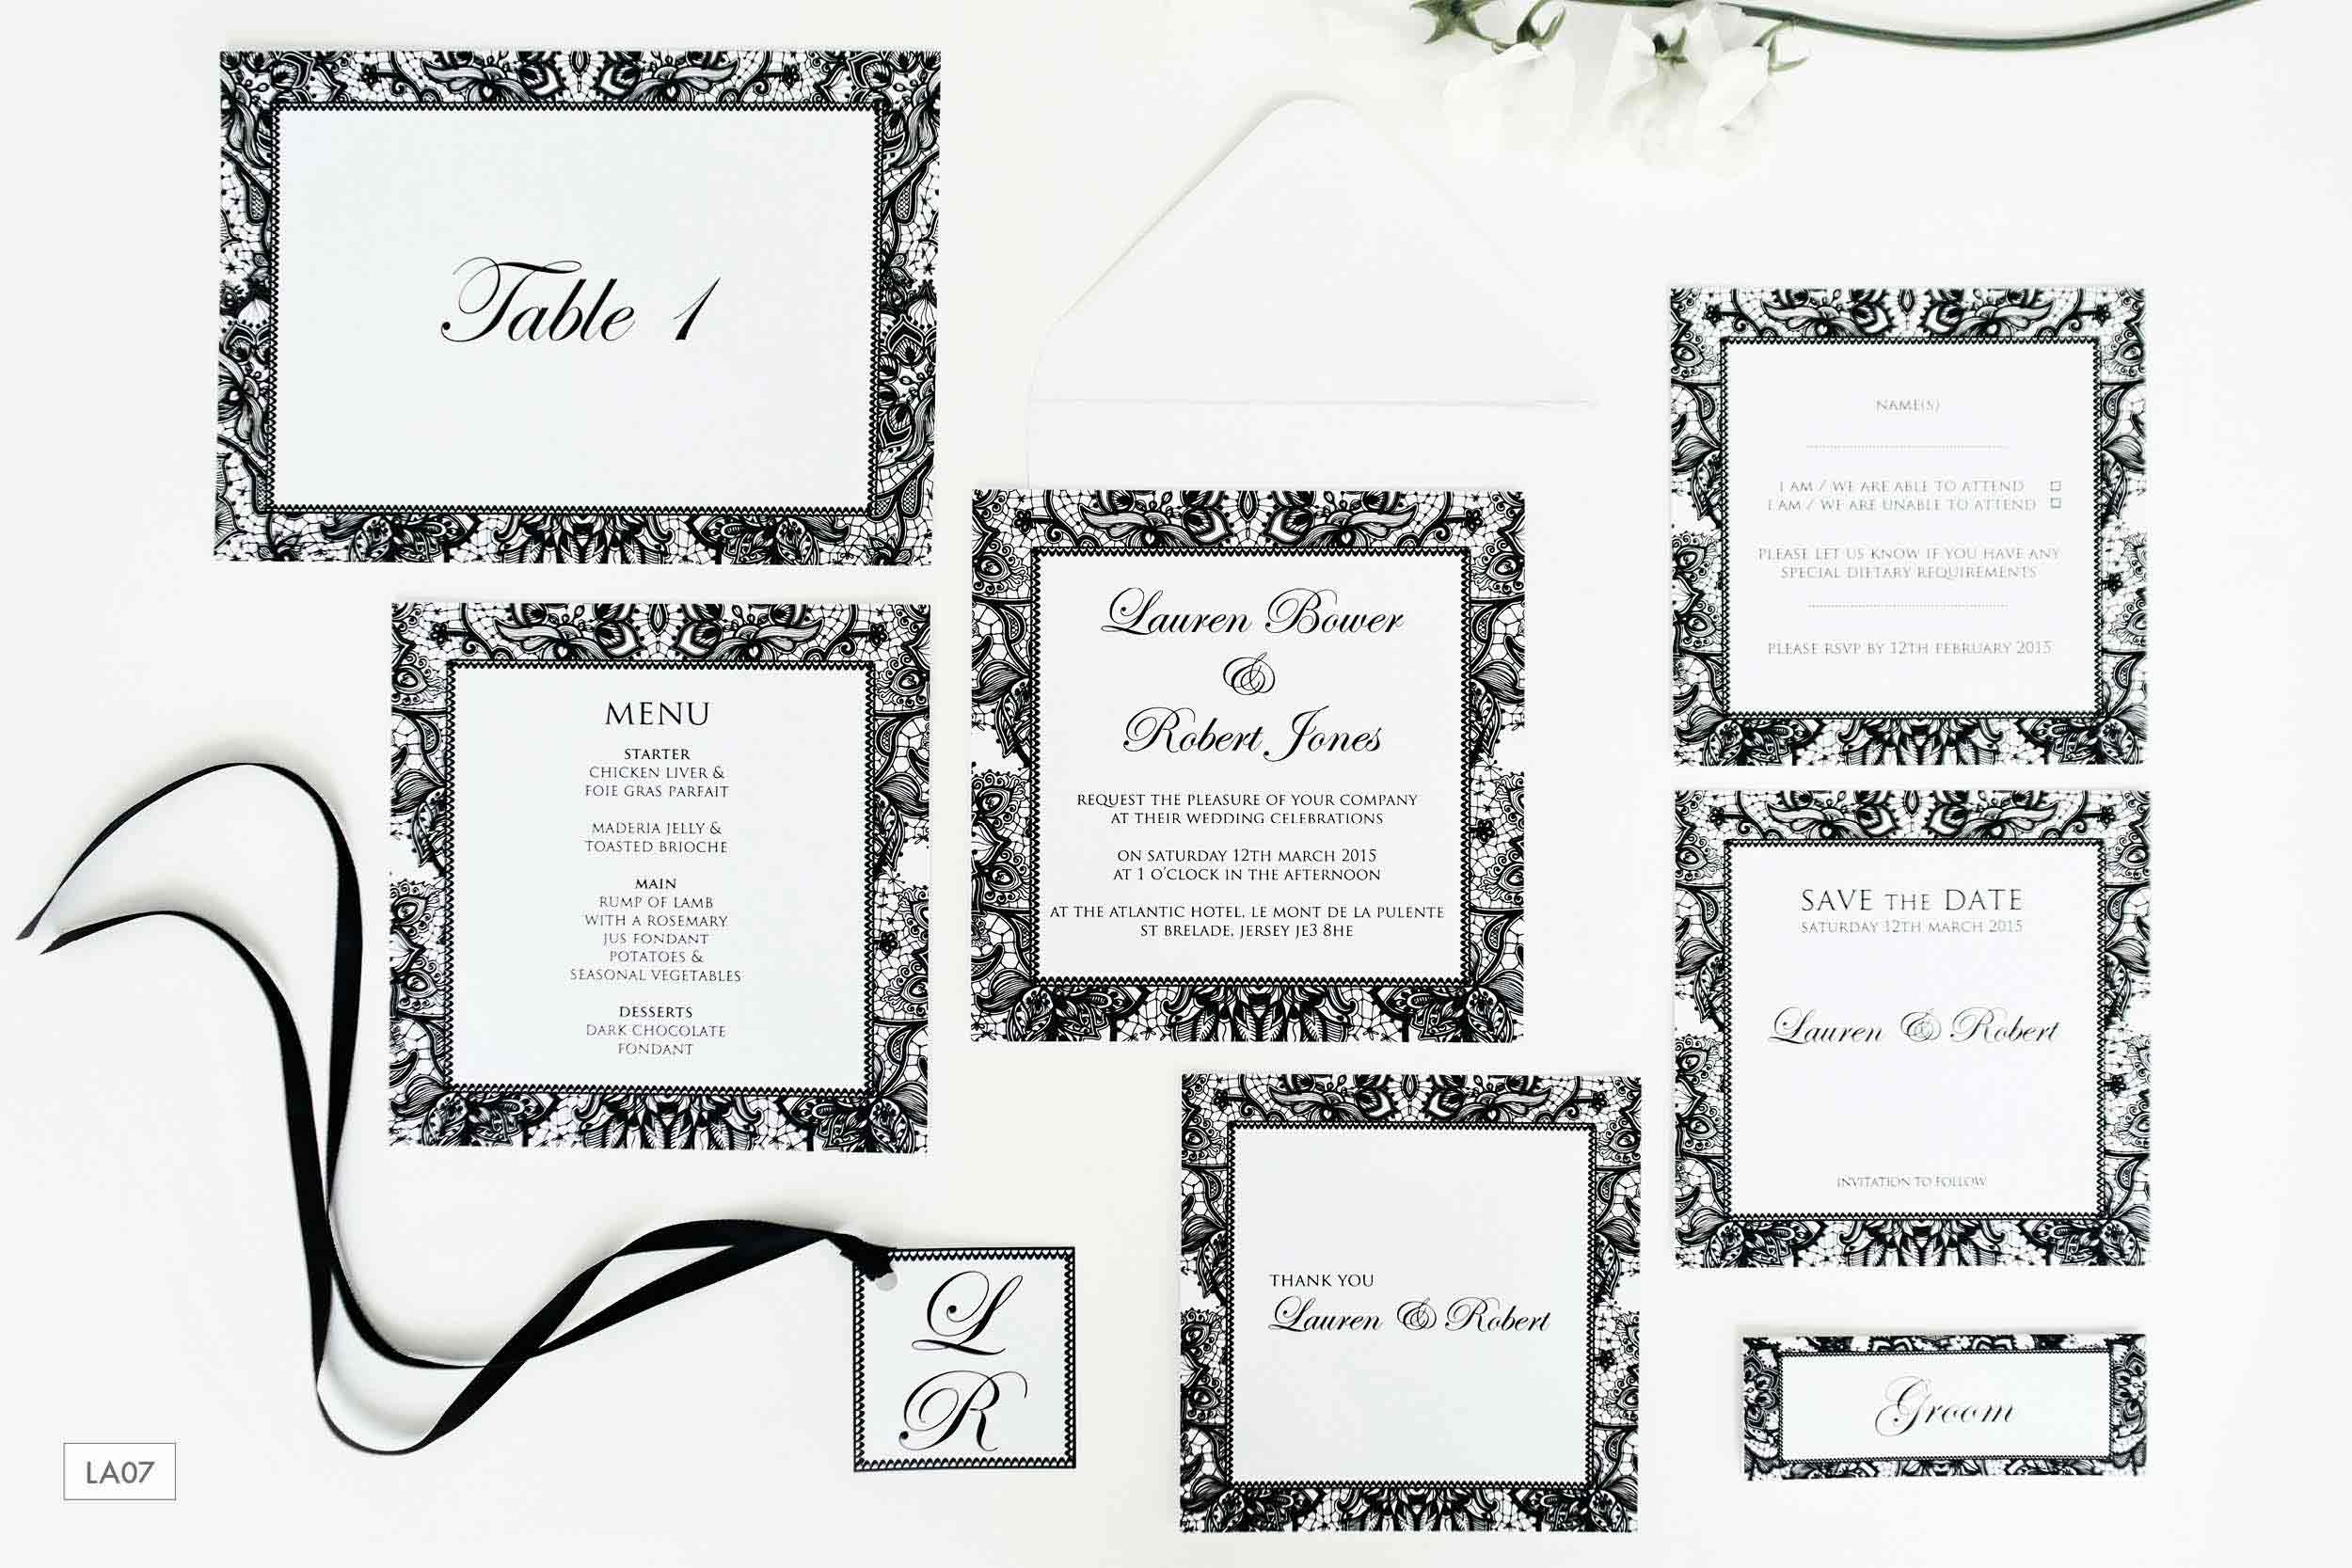 ananya-wedding-stationery-lace27.jpg